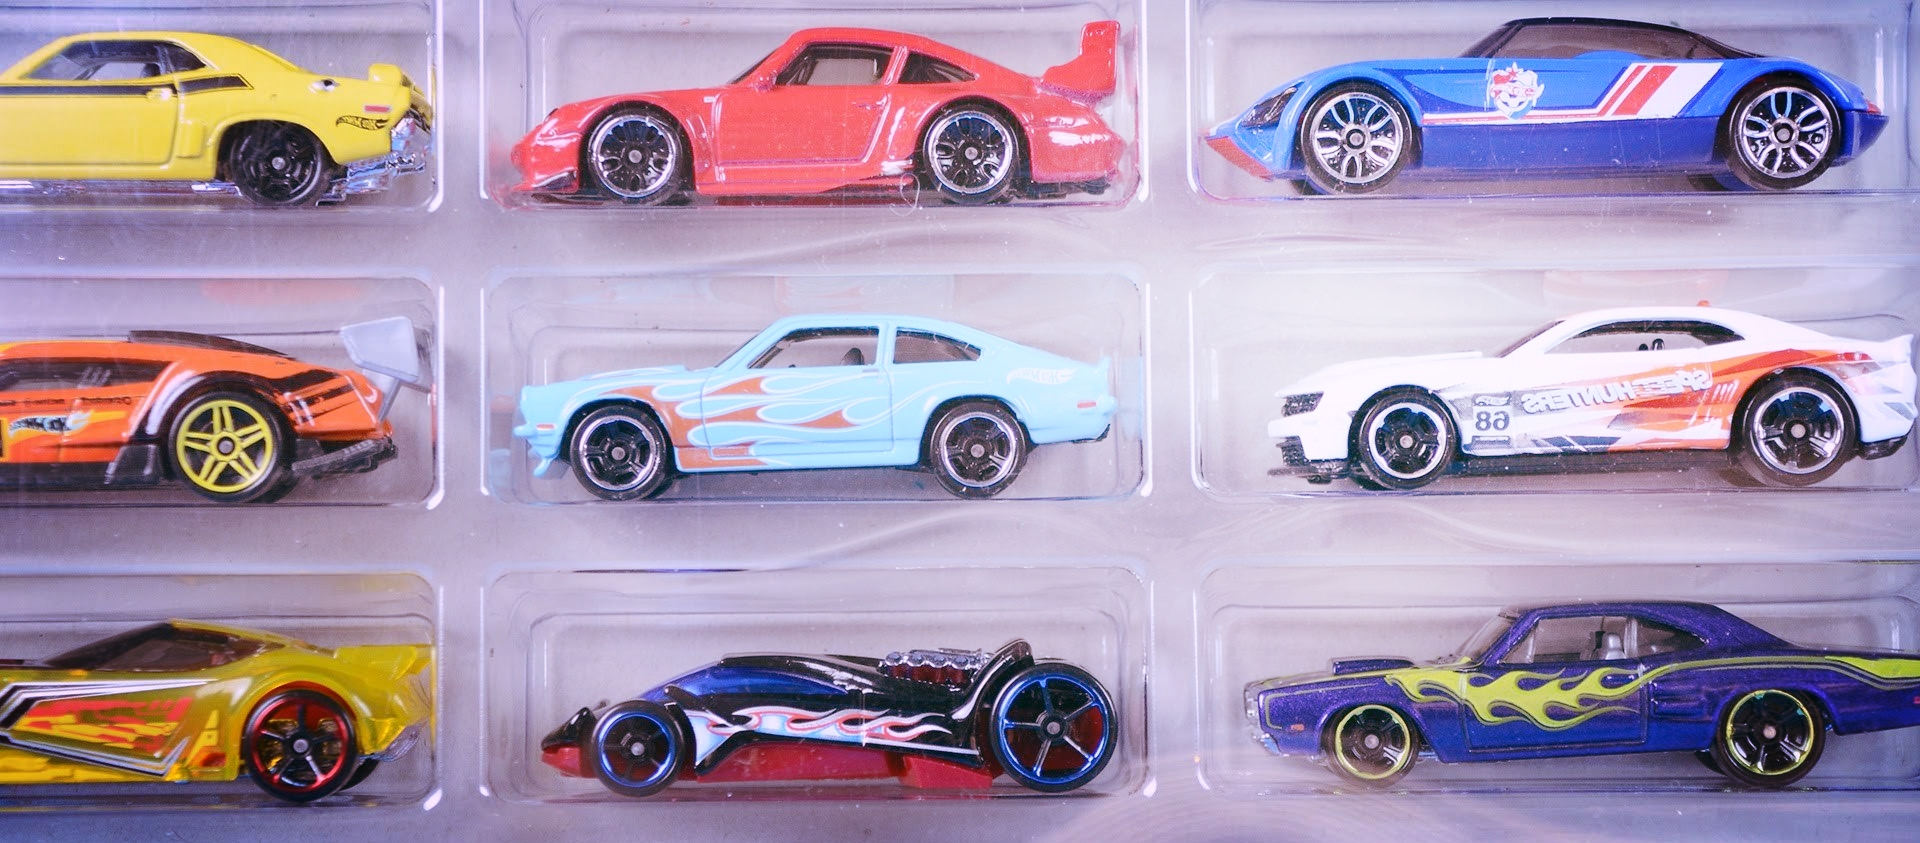 cool-toy-cars-hot-wheels.jpg